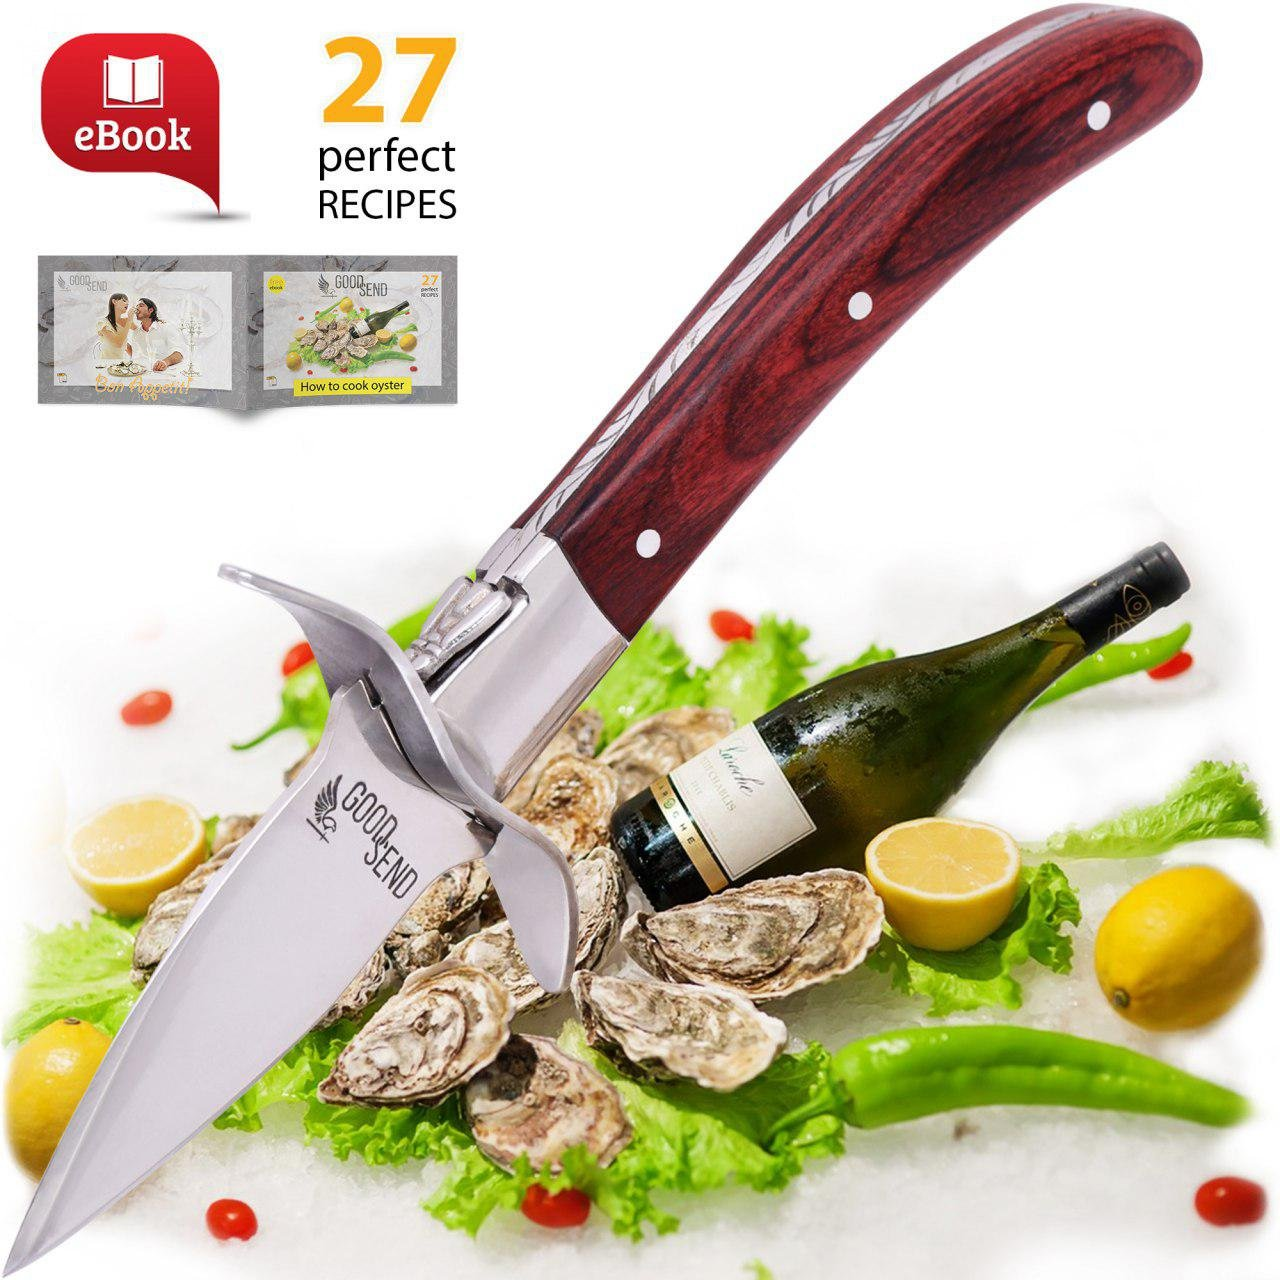 Oyster Knife - Oyster Shucking Knife - Oyster Shucker - Oyster Opener - Oyster Clam Pearl Shell Shucking Knife and Opening Tool – Includes 27 Recieps by GoodSend (Image #7)